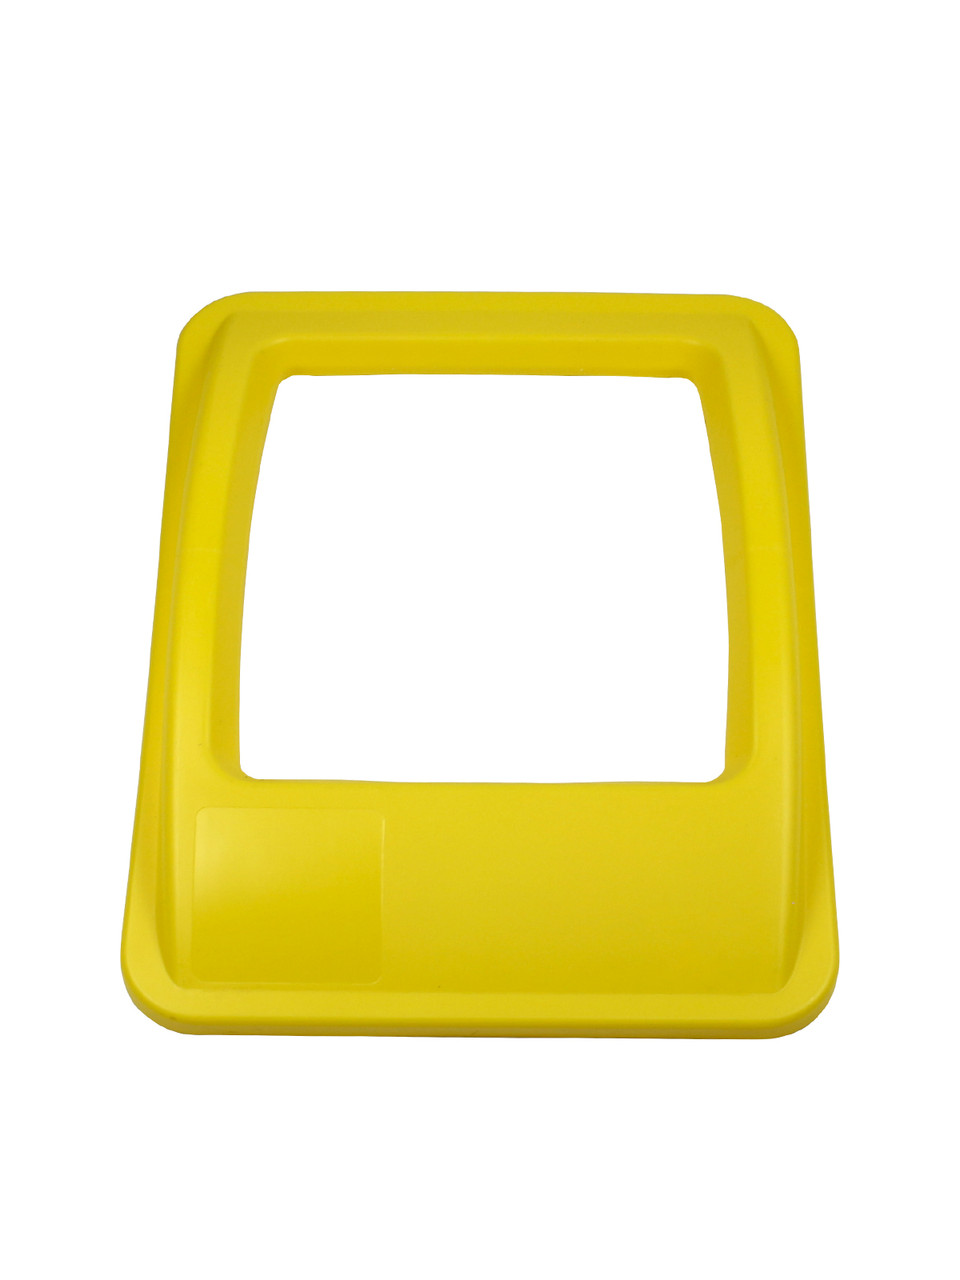 RECTANGLE OPENING LID YELLOW